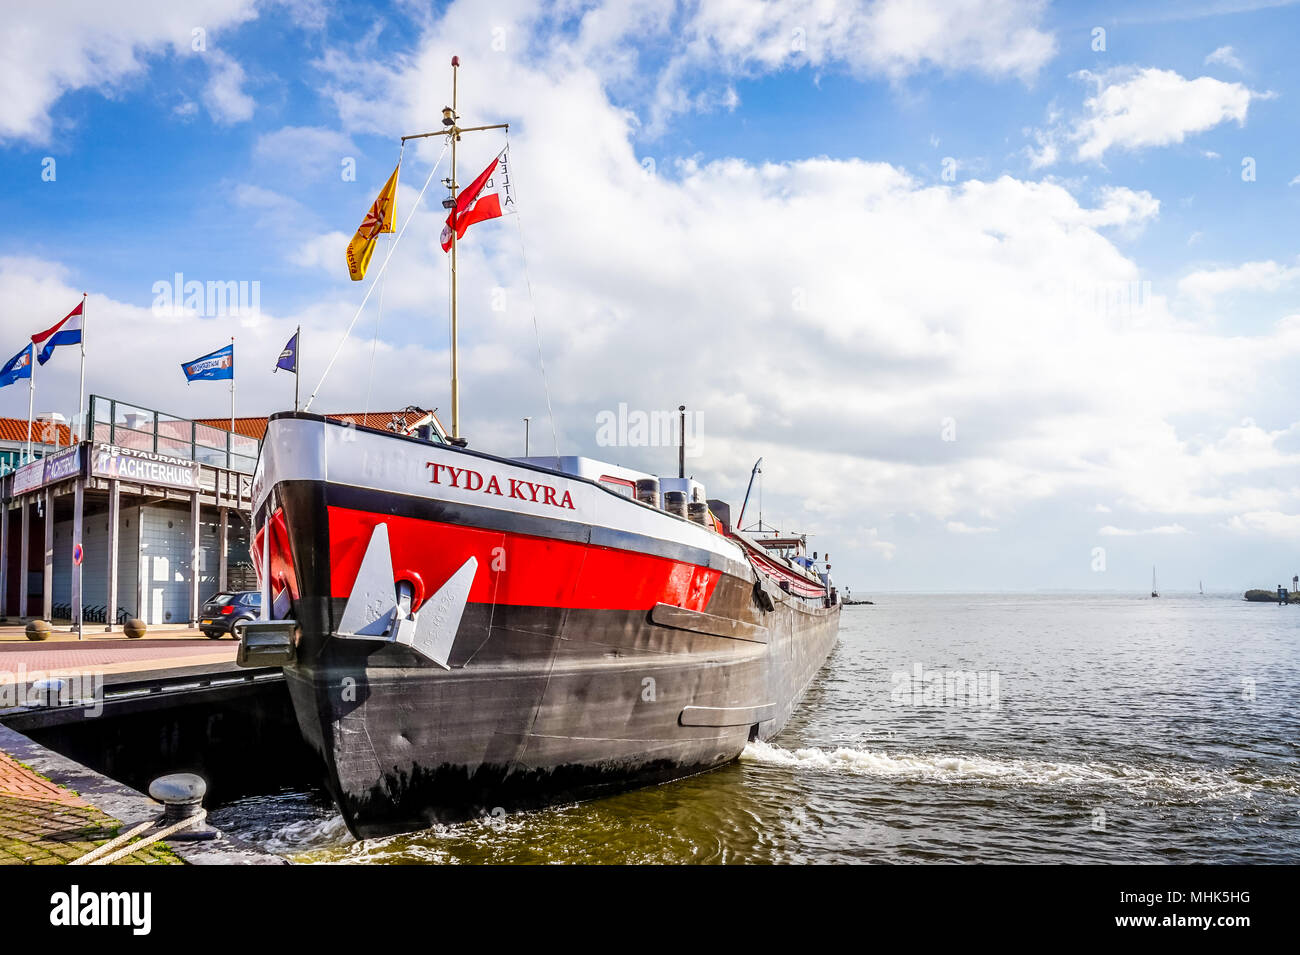 A typical scene of a large Dutch fishing vessel used for deep sea fishing in the North Sea off the coast of the Netherlands. - Stock Image